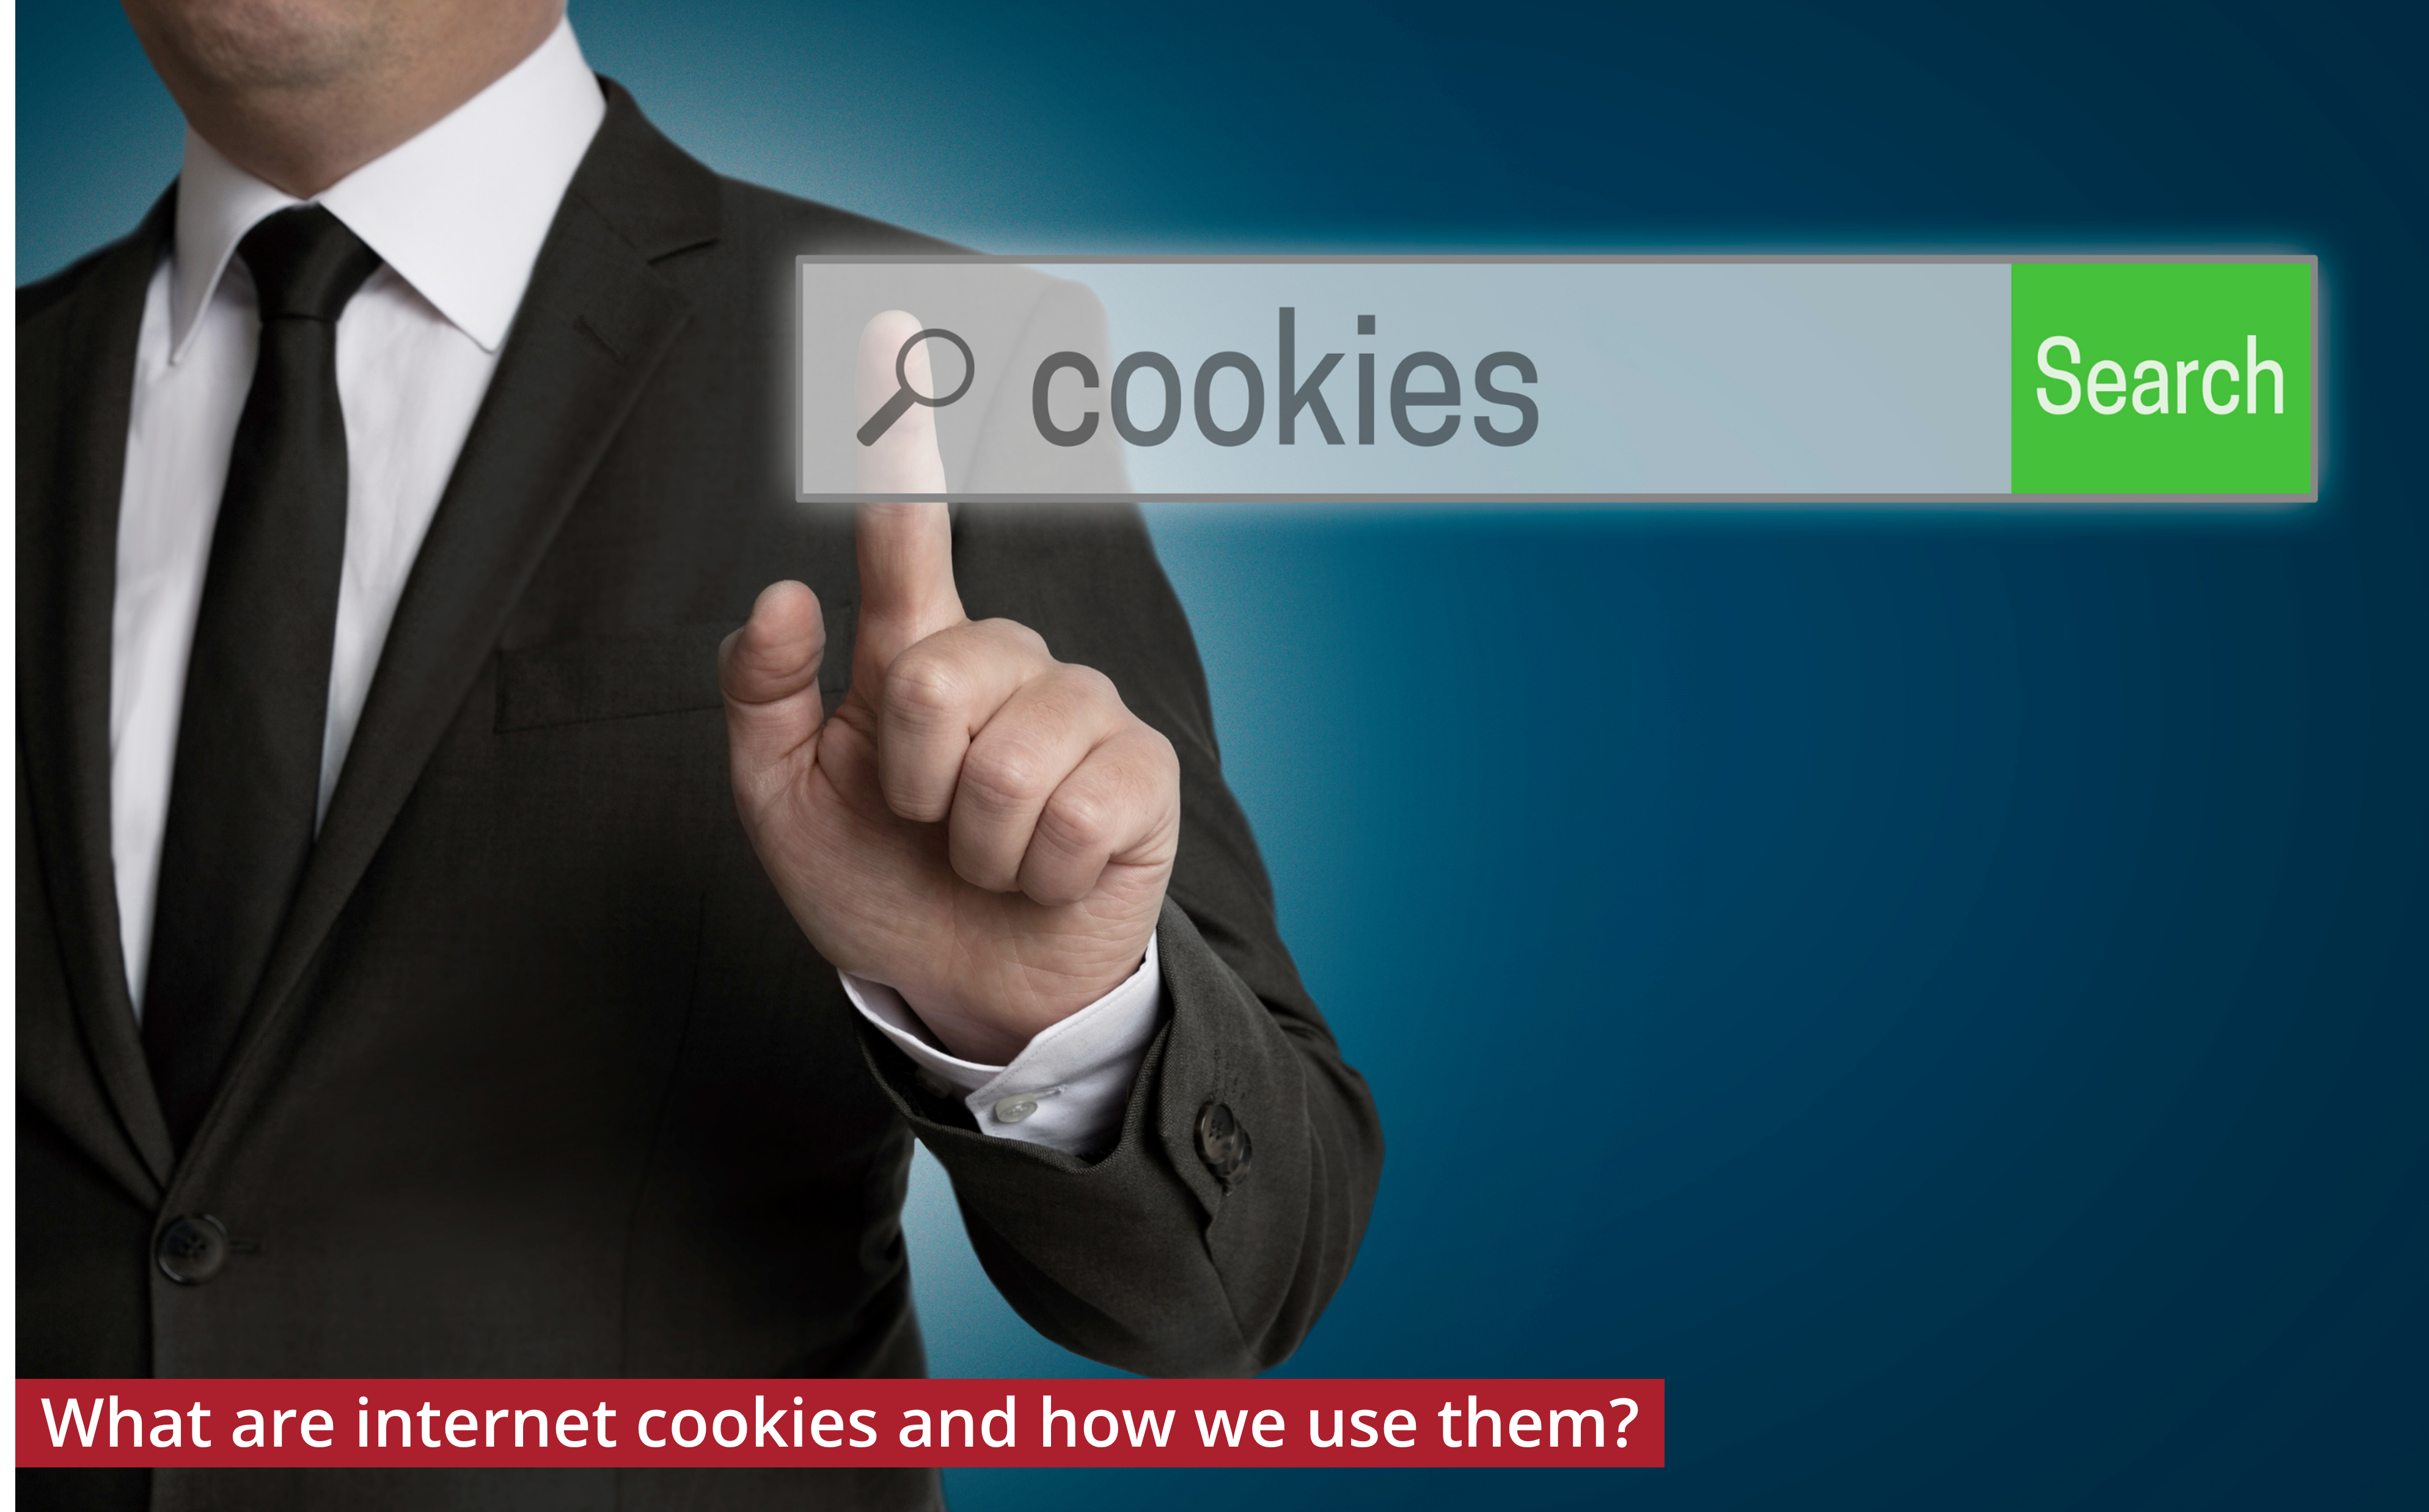 Cookies-What are they and how we use them